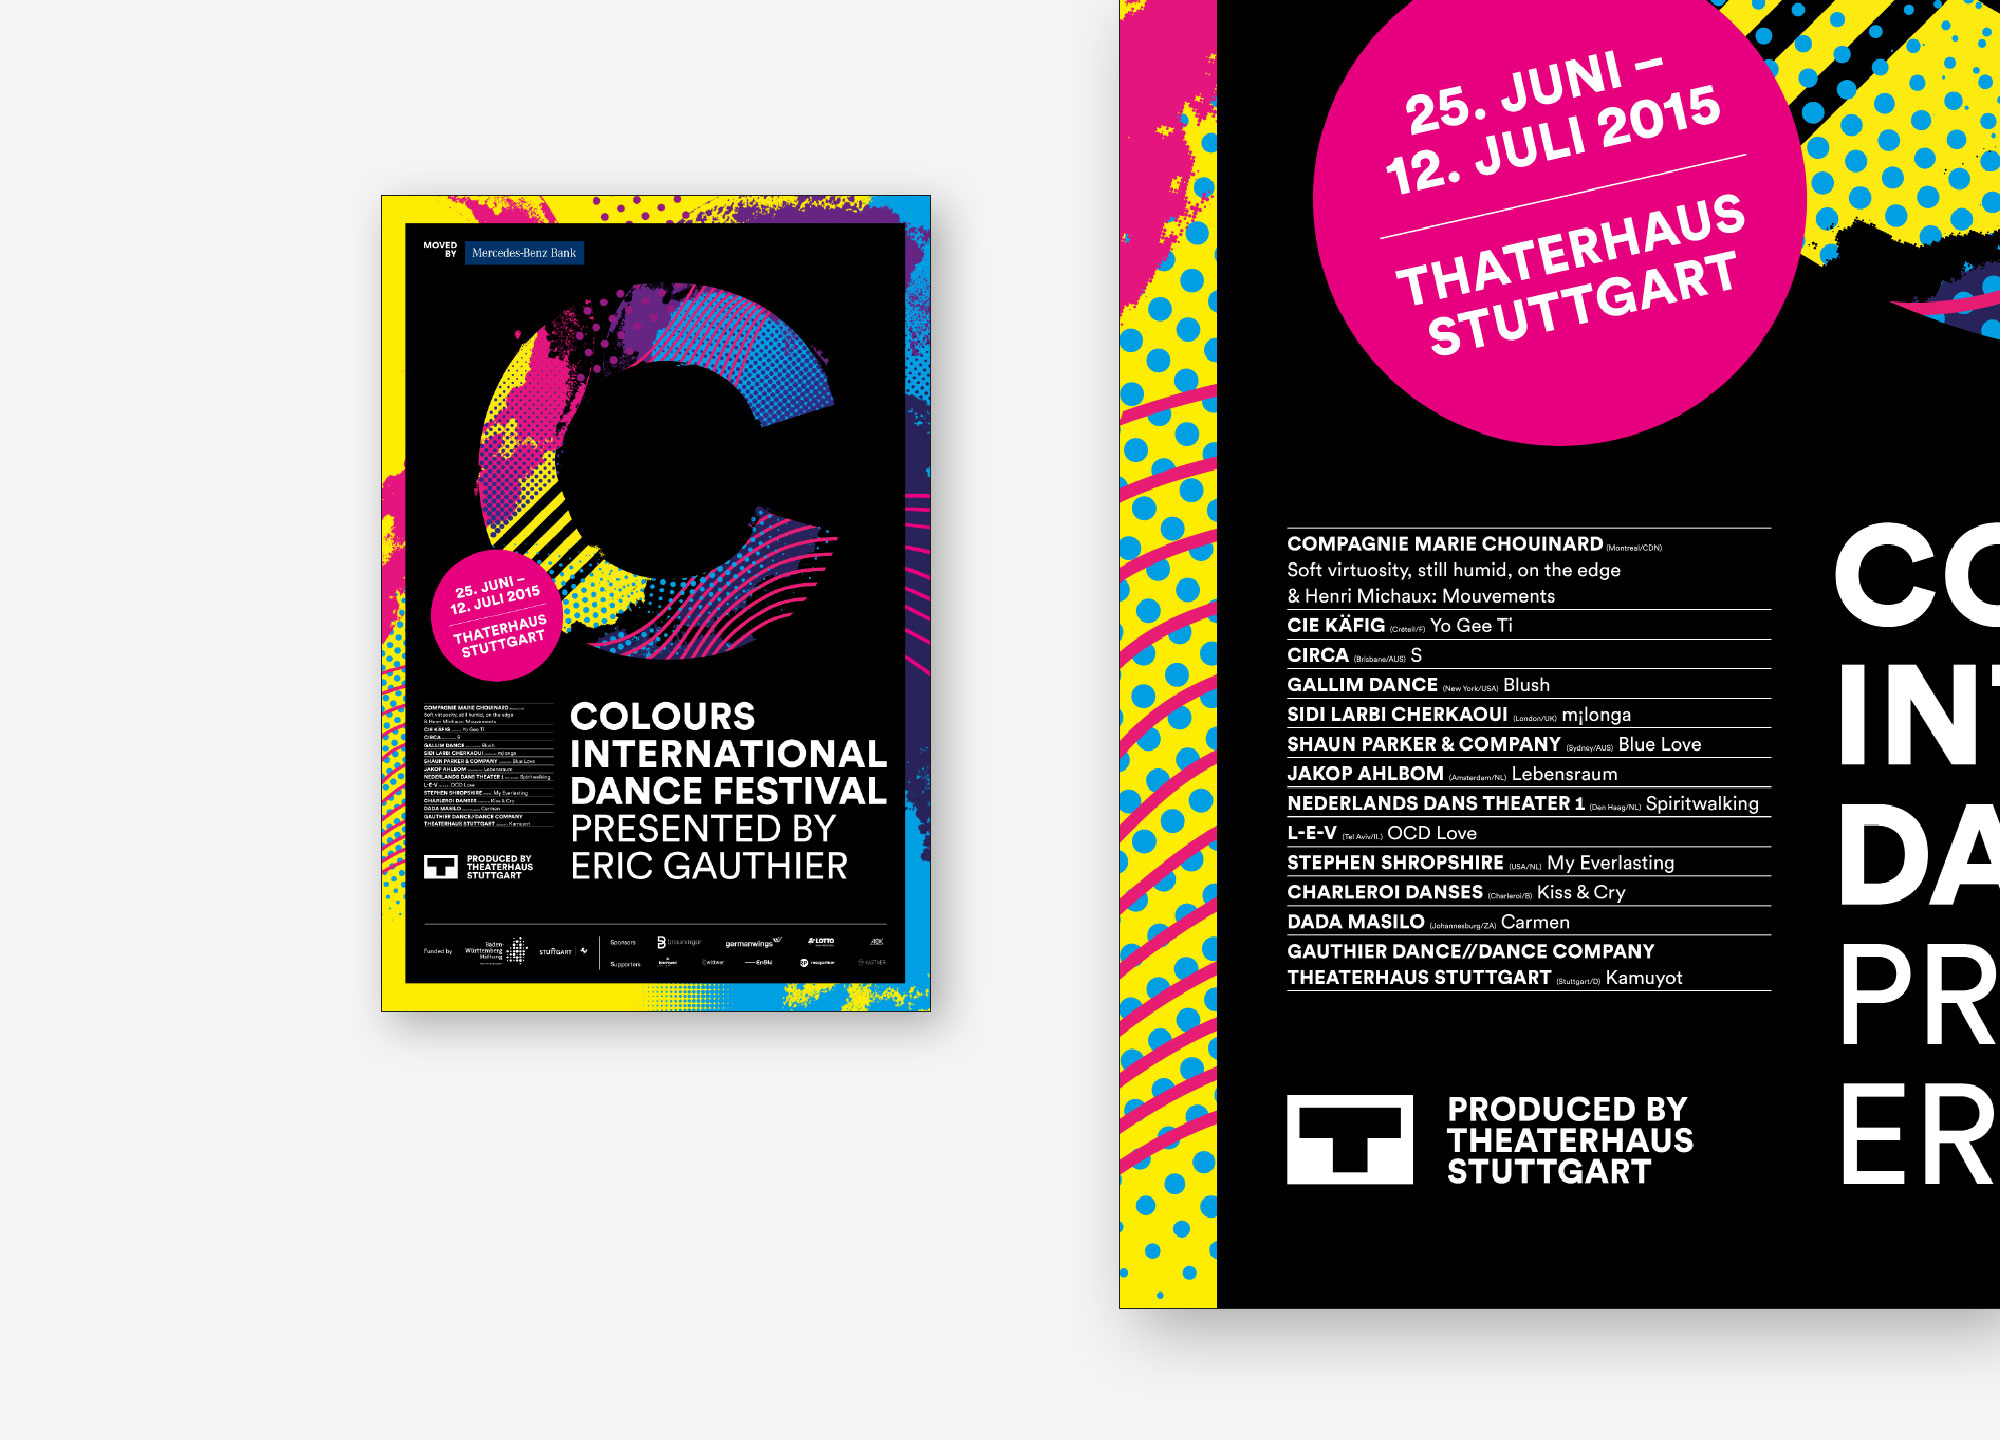 75a aus Stuttgart entwickelt das Corporate Design des Colours International Dance Festival 2015 presented by Eric Gauthier